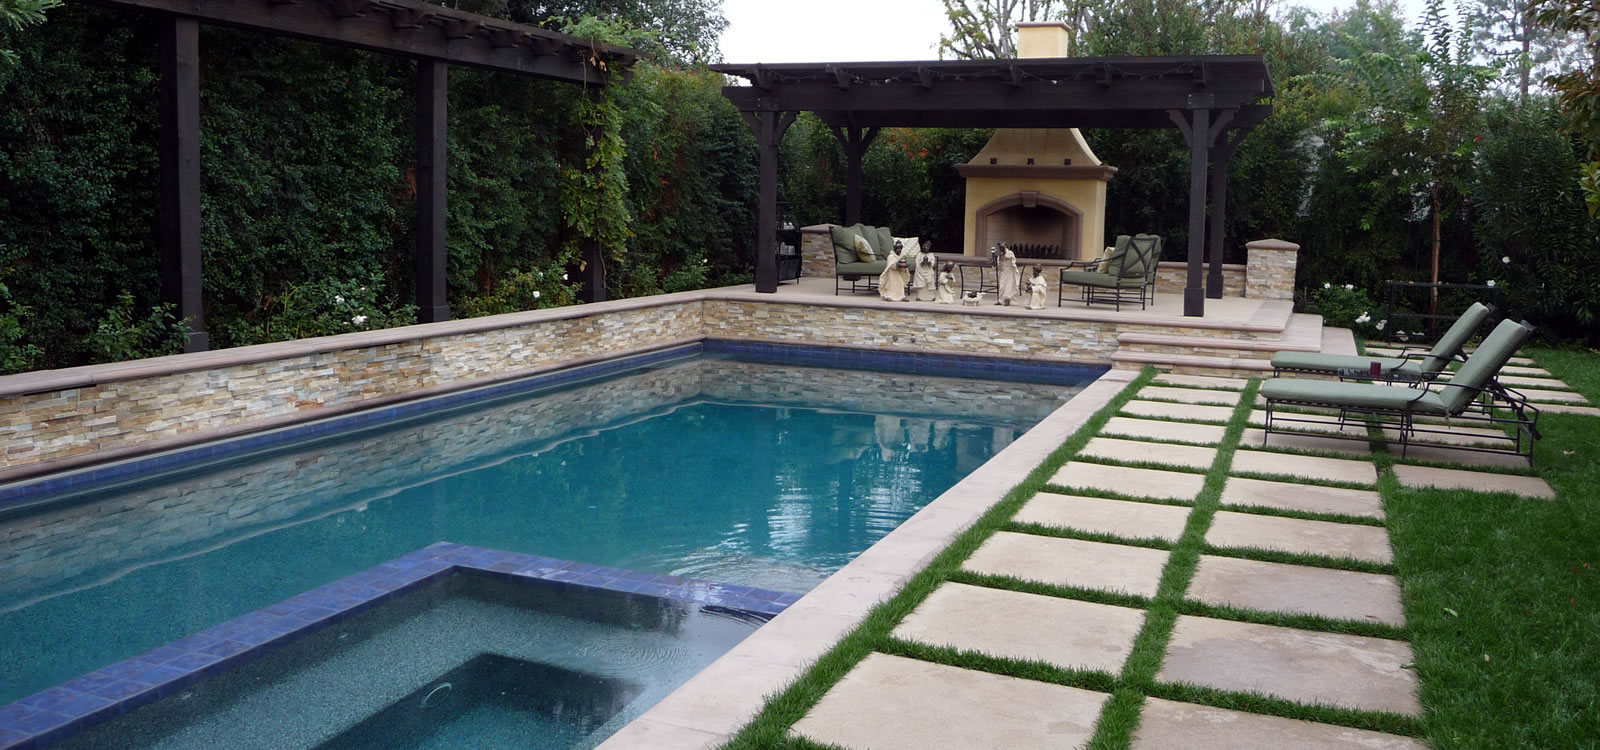 Woodland Hills Outdoor Living Spaces with BBQ Islands and Custom Hardscape